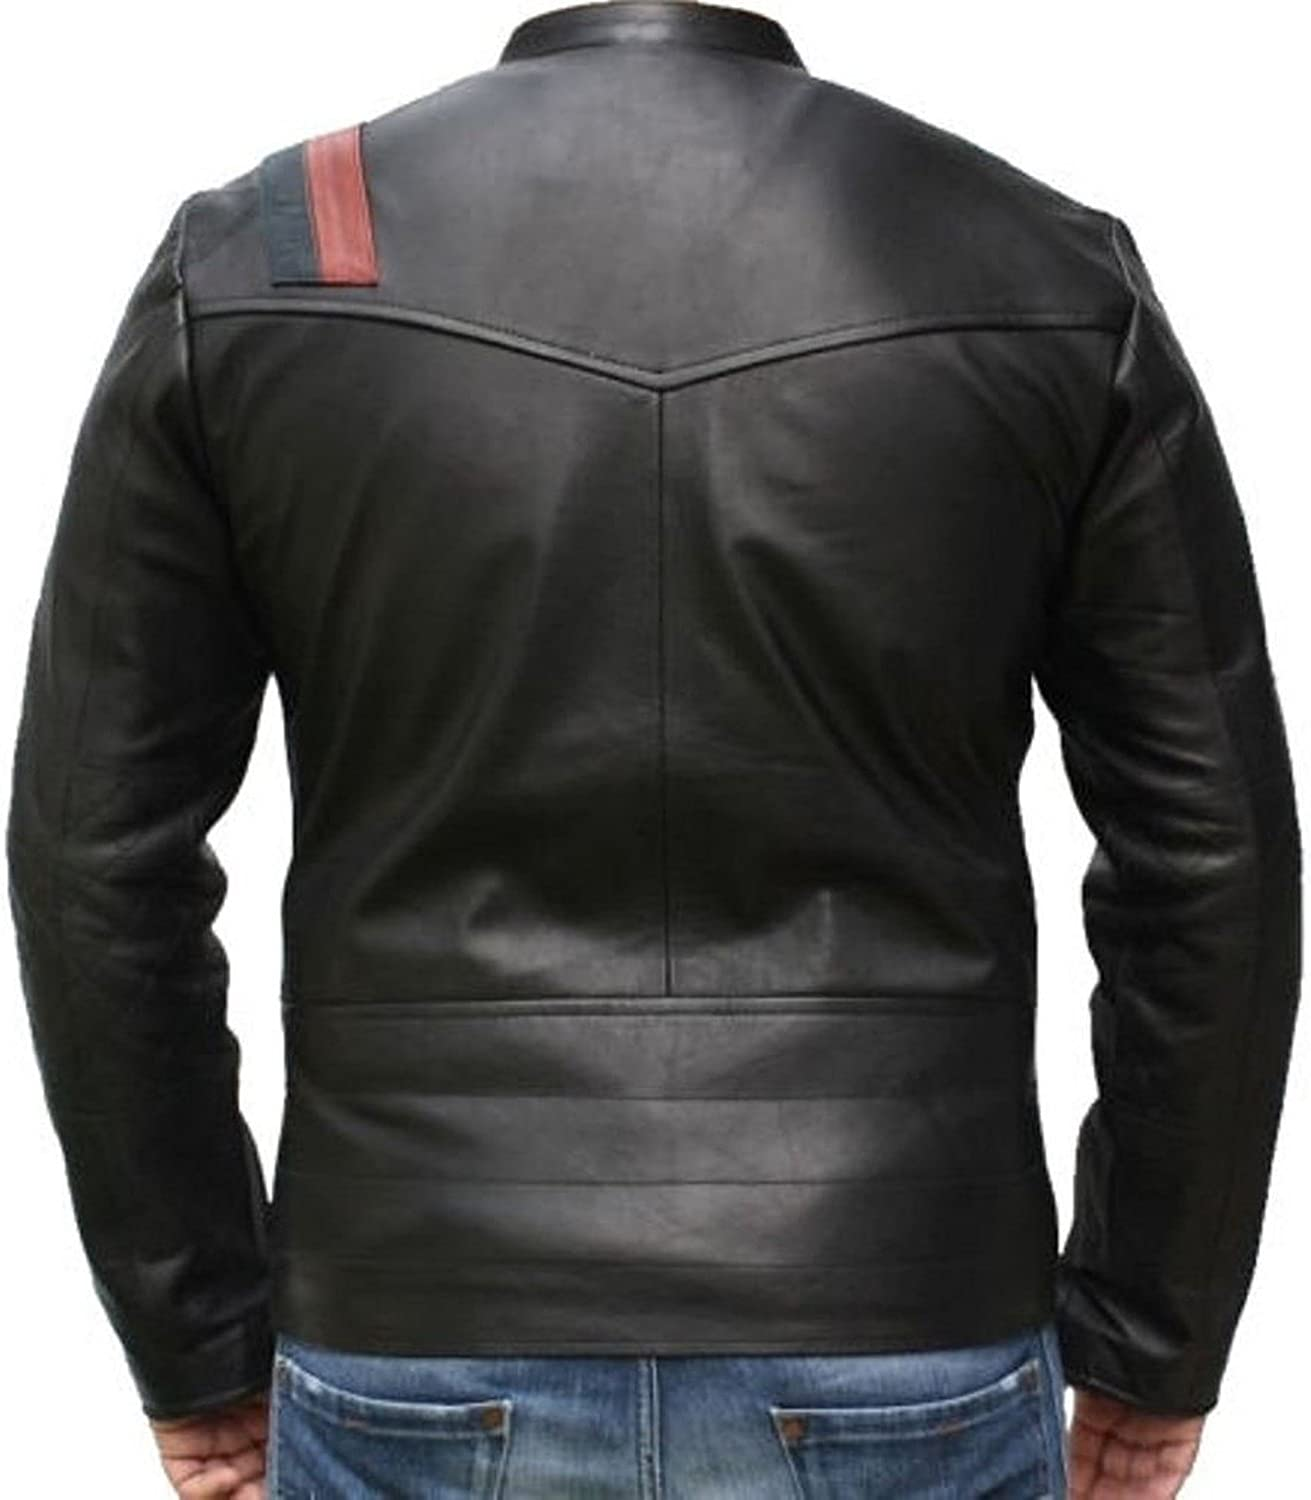 New Men Quilted Leather Jacket Soft Lambskin Biker Bomber T809